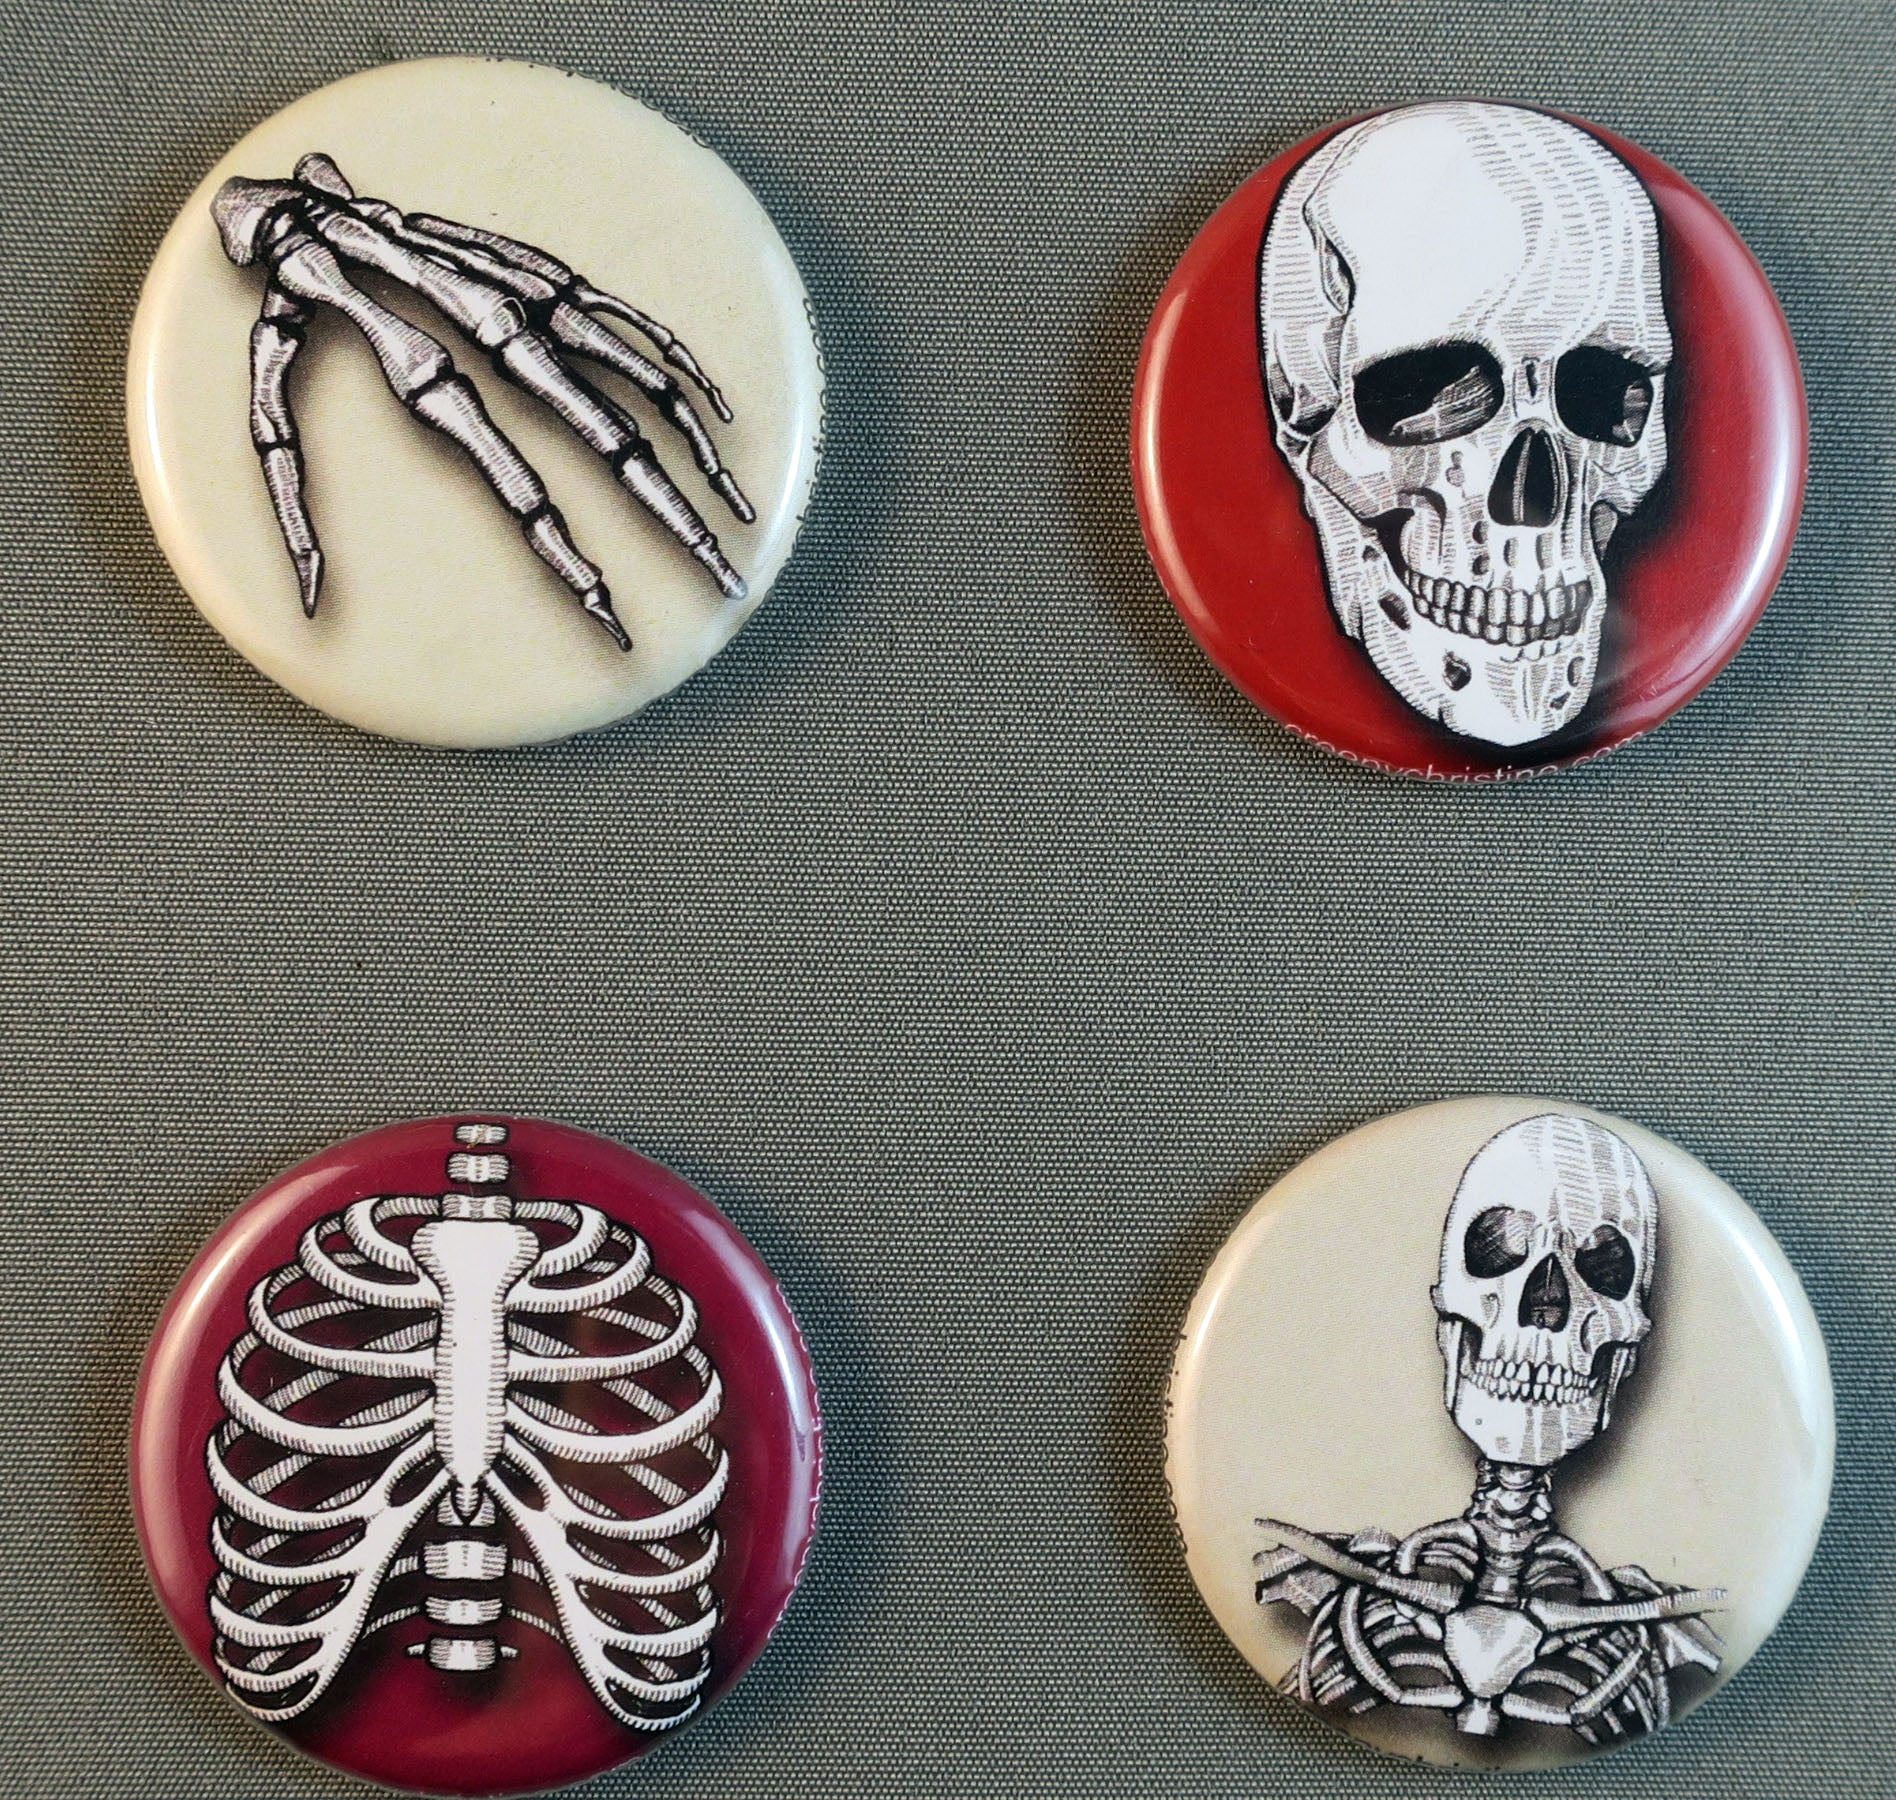 human anatomy bones ribs skull buttons magnets